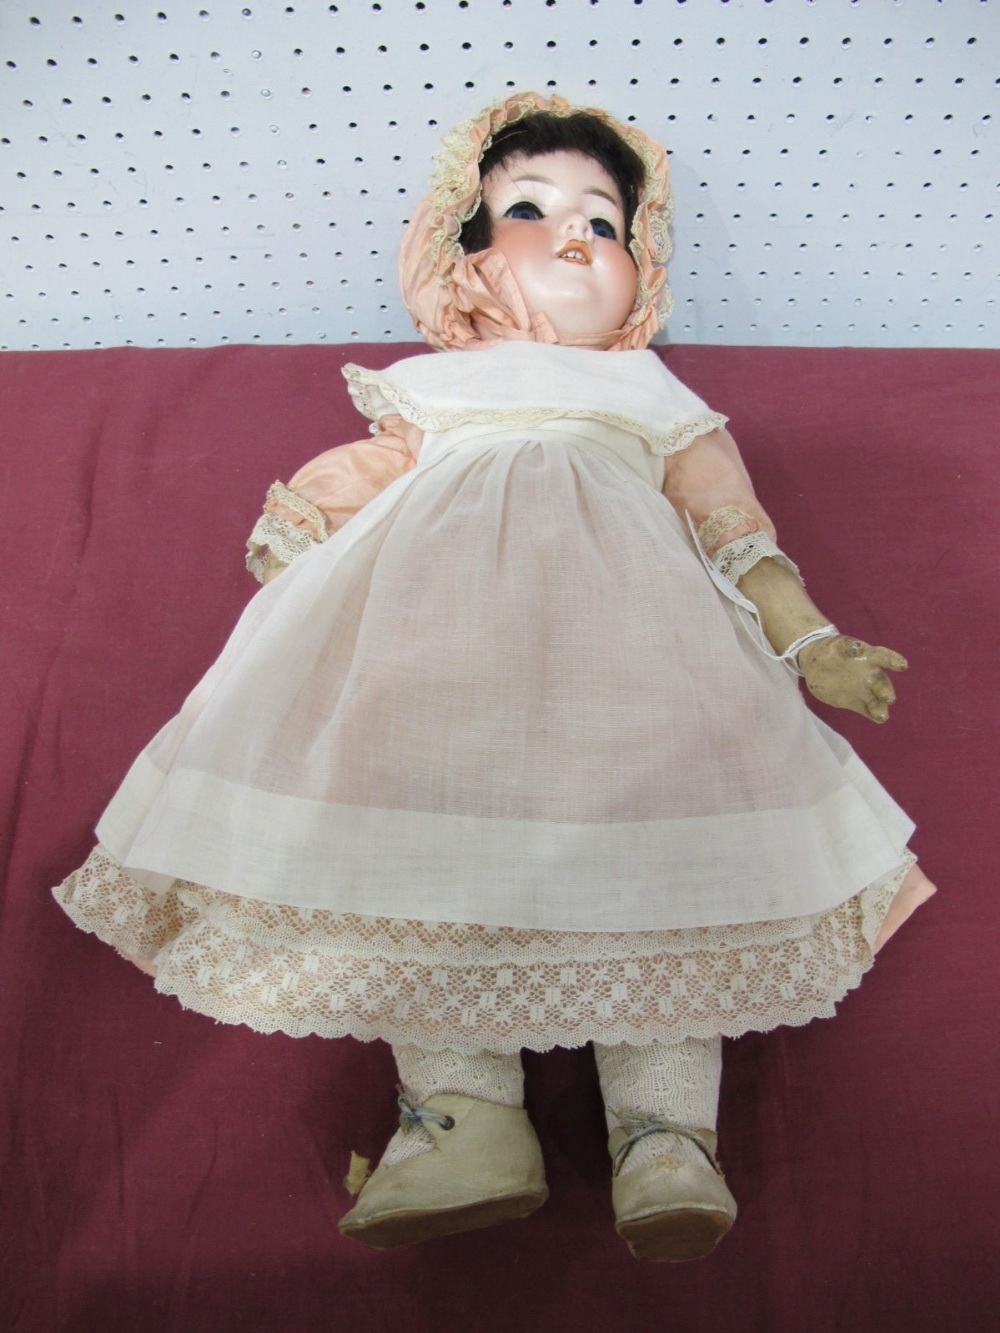 Lot 20 - An Early XX Century Bisque Headed Doll By Armand Marseilles of Germany, head stamped 390N, DRGM